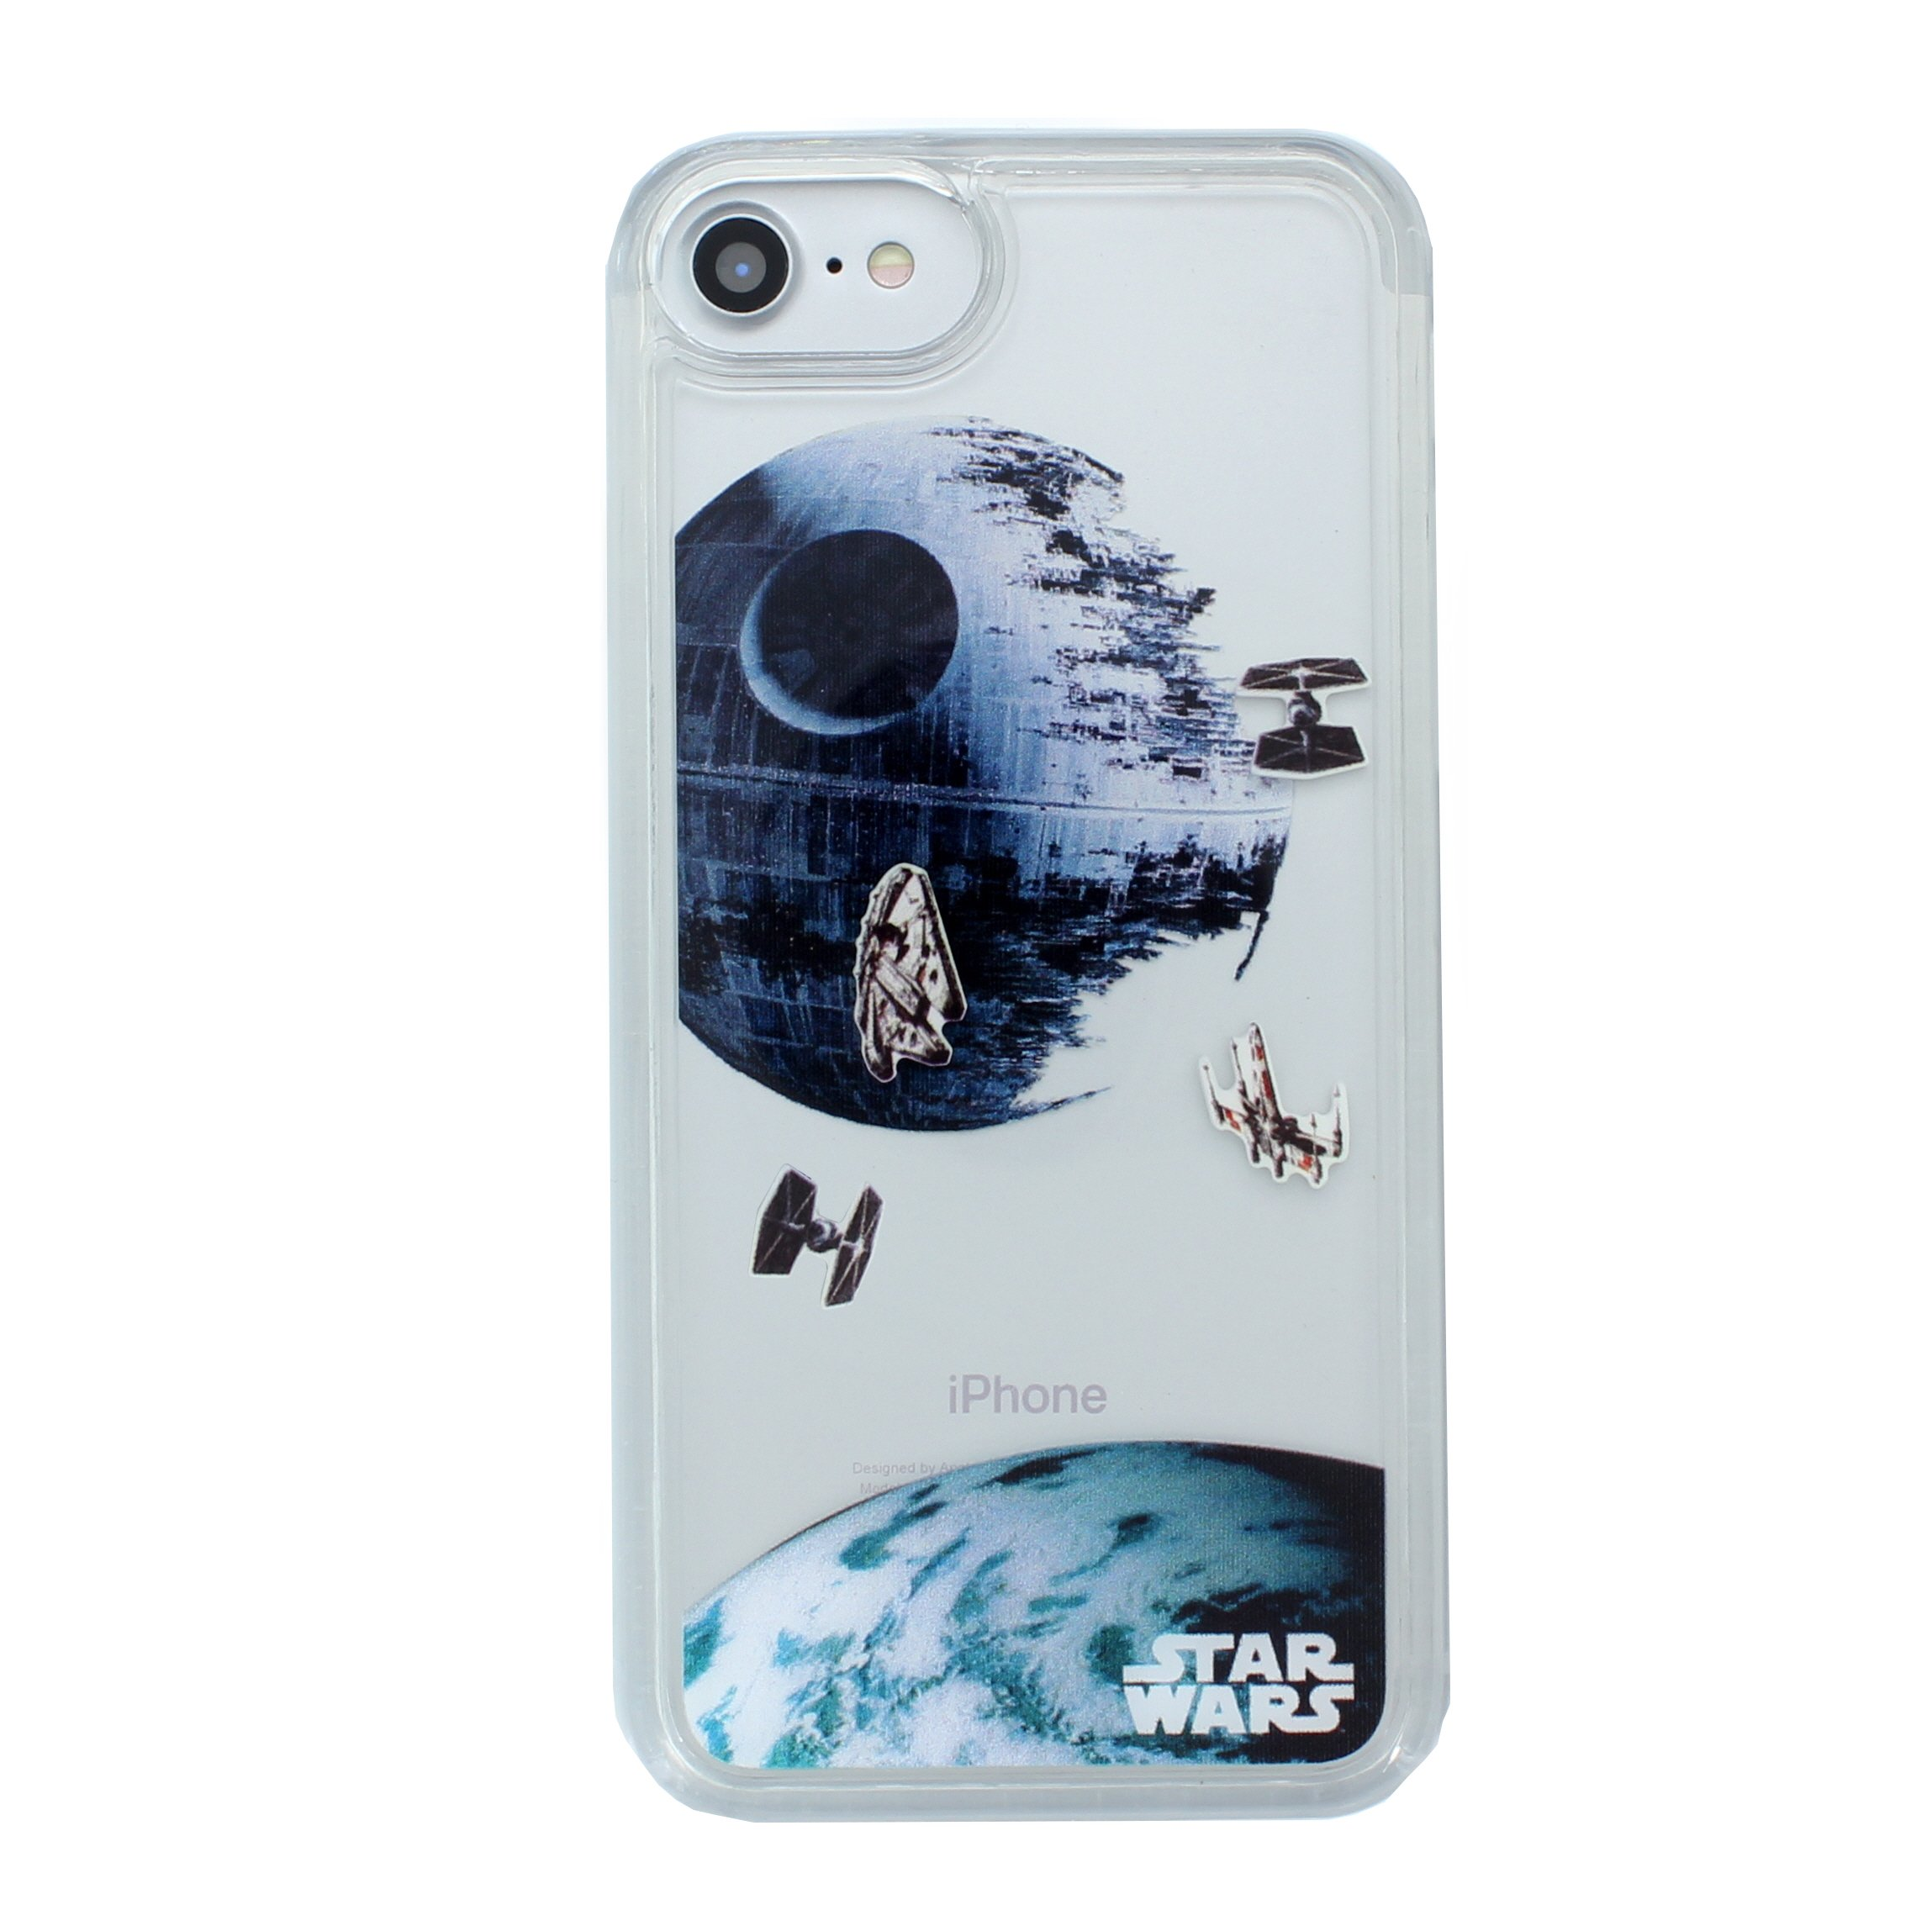 iPhone 6/7/8 Star Wars Water clip case Image